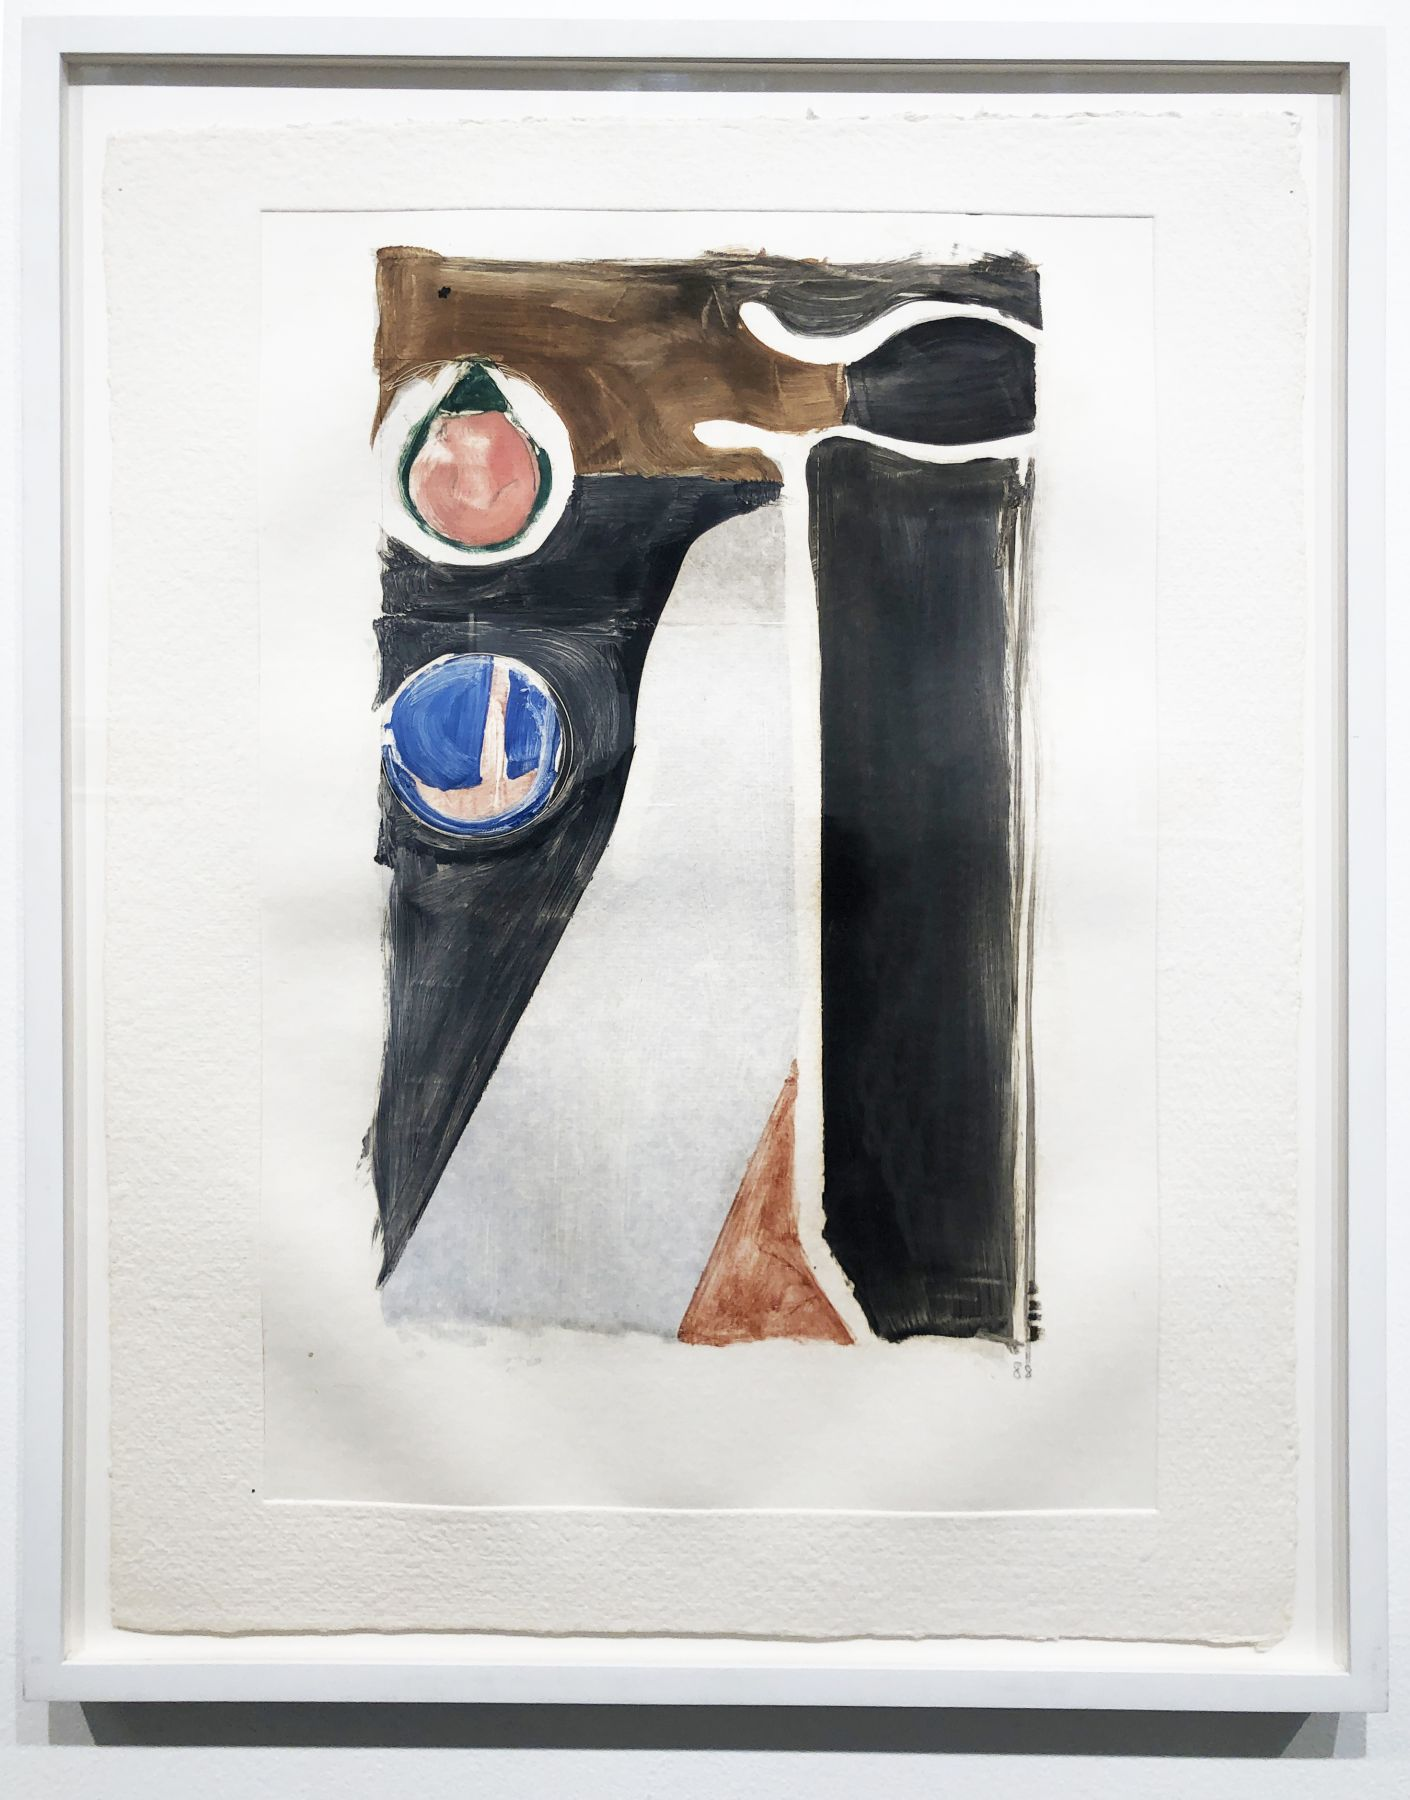 Richard Diebenkorn, V, 1988